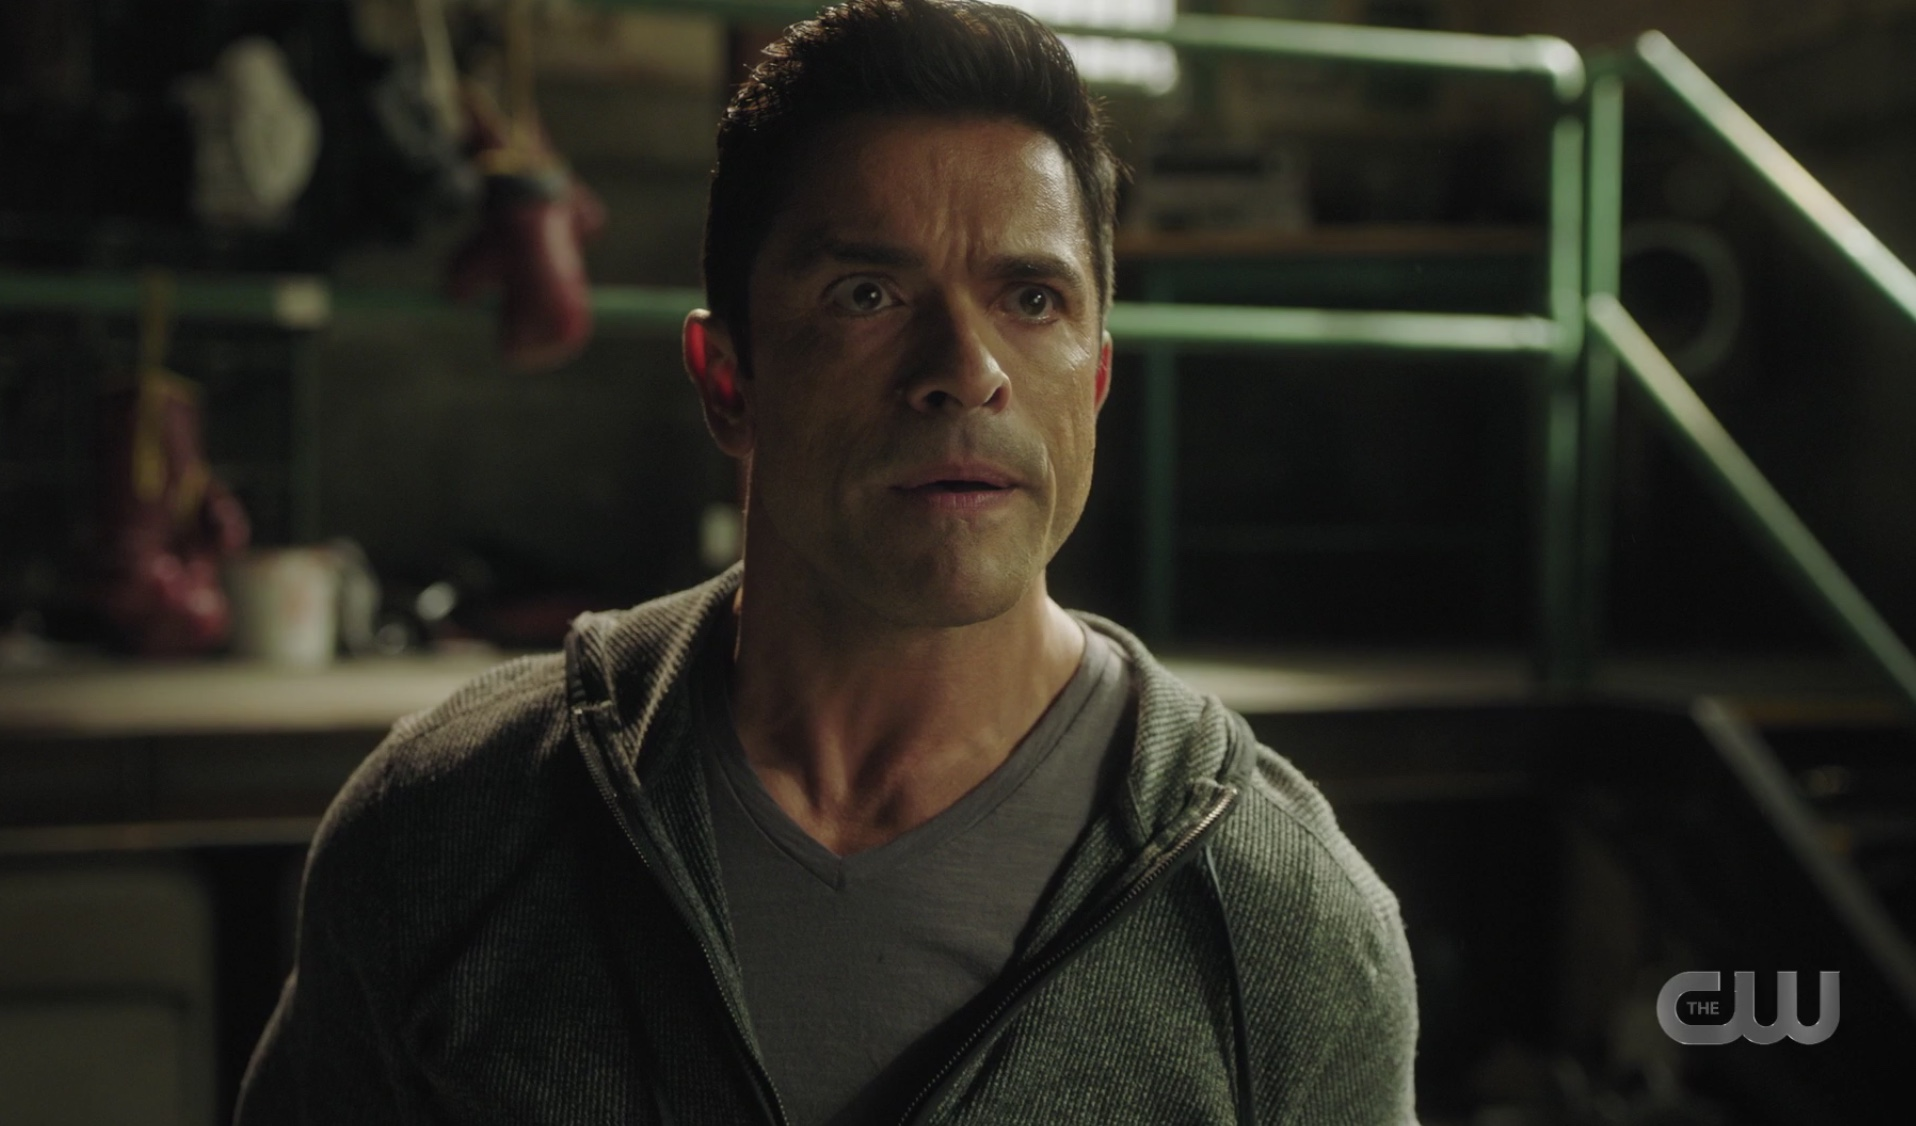 Hiram is ready to box Archie's face on Riverdale